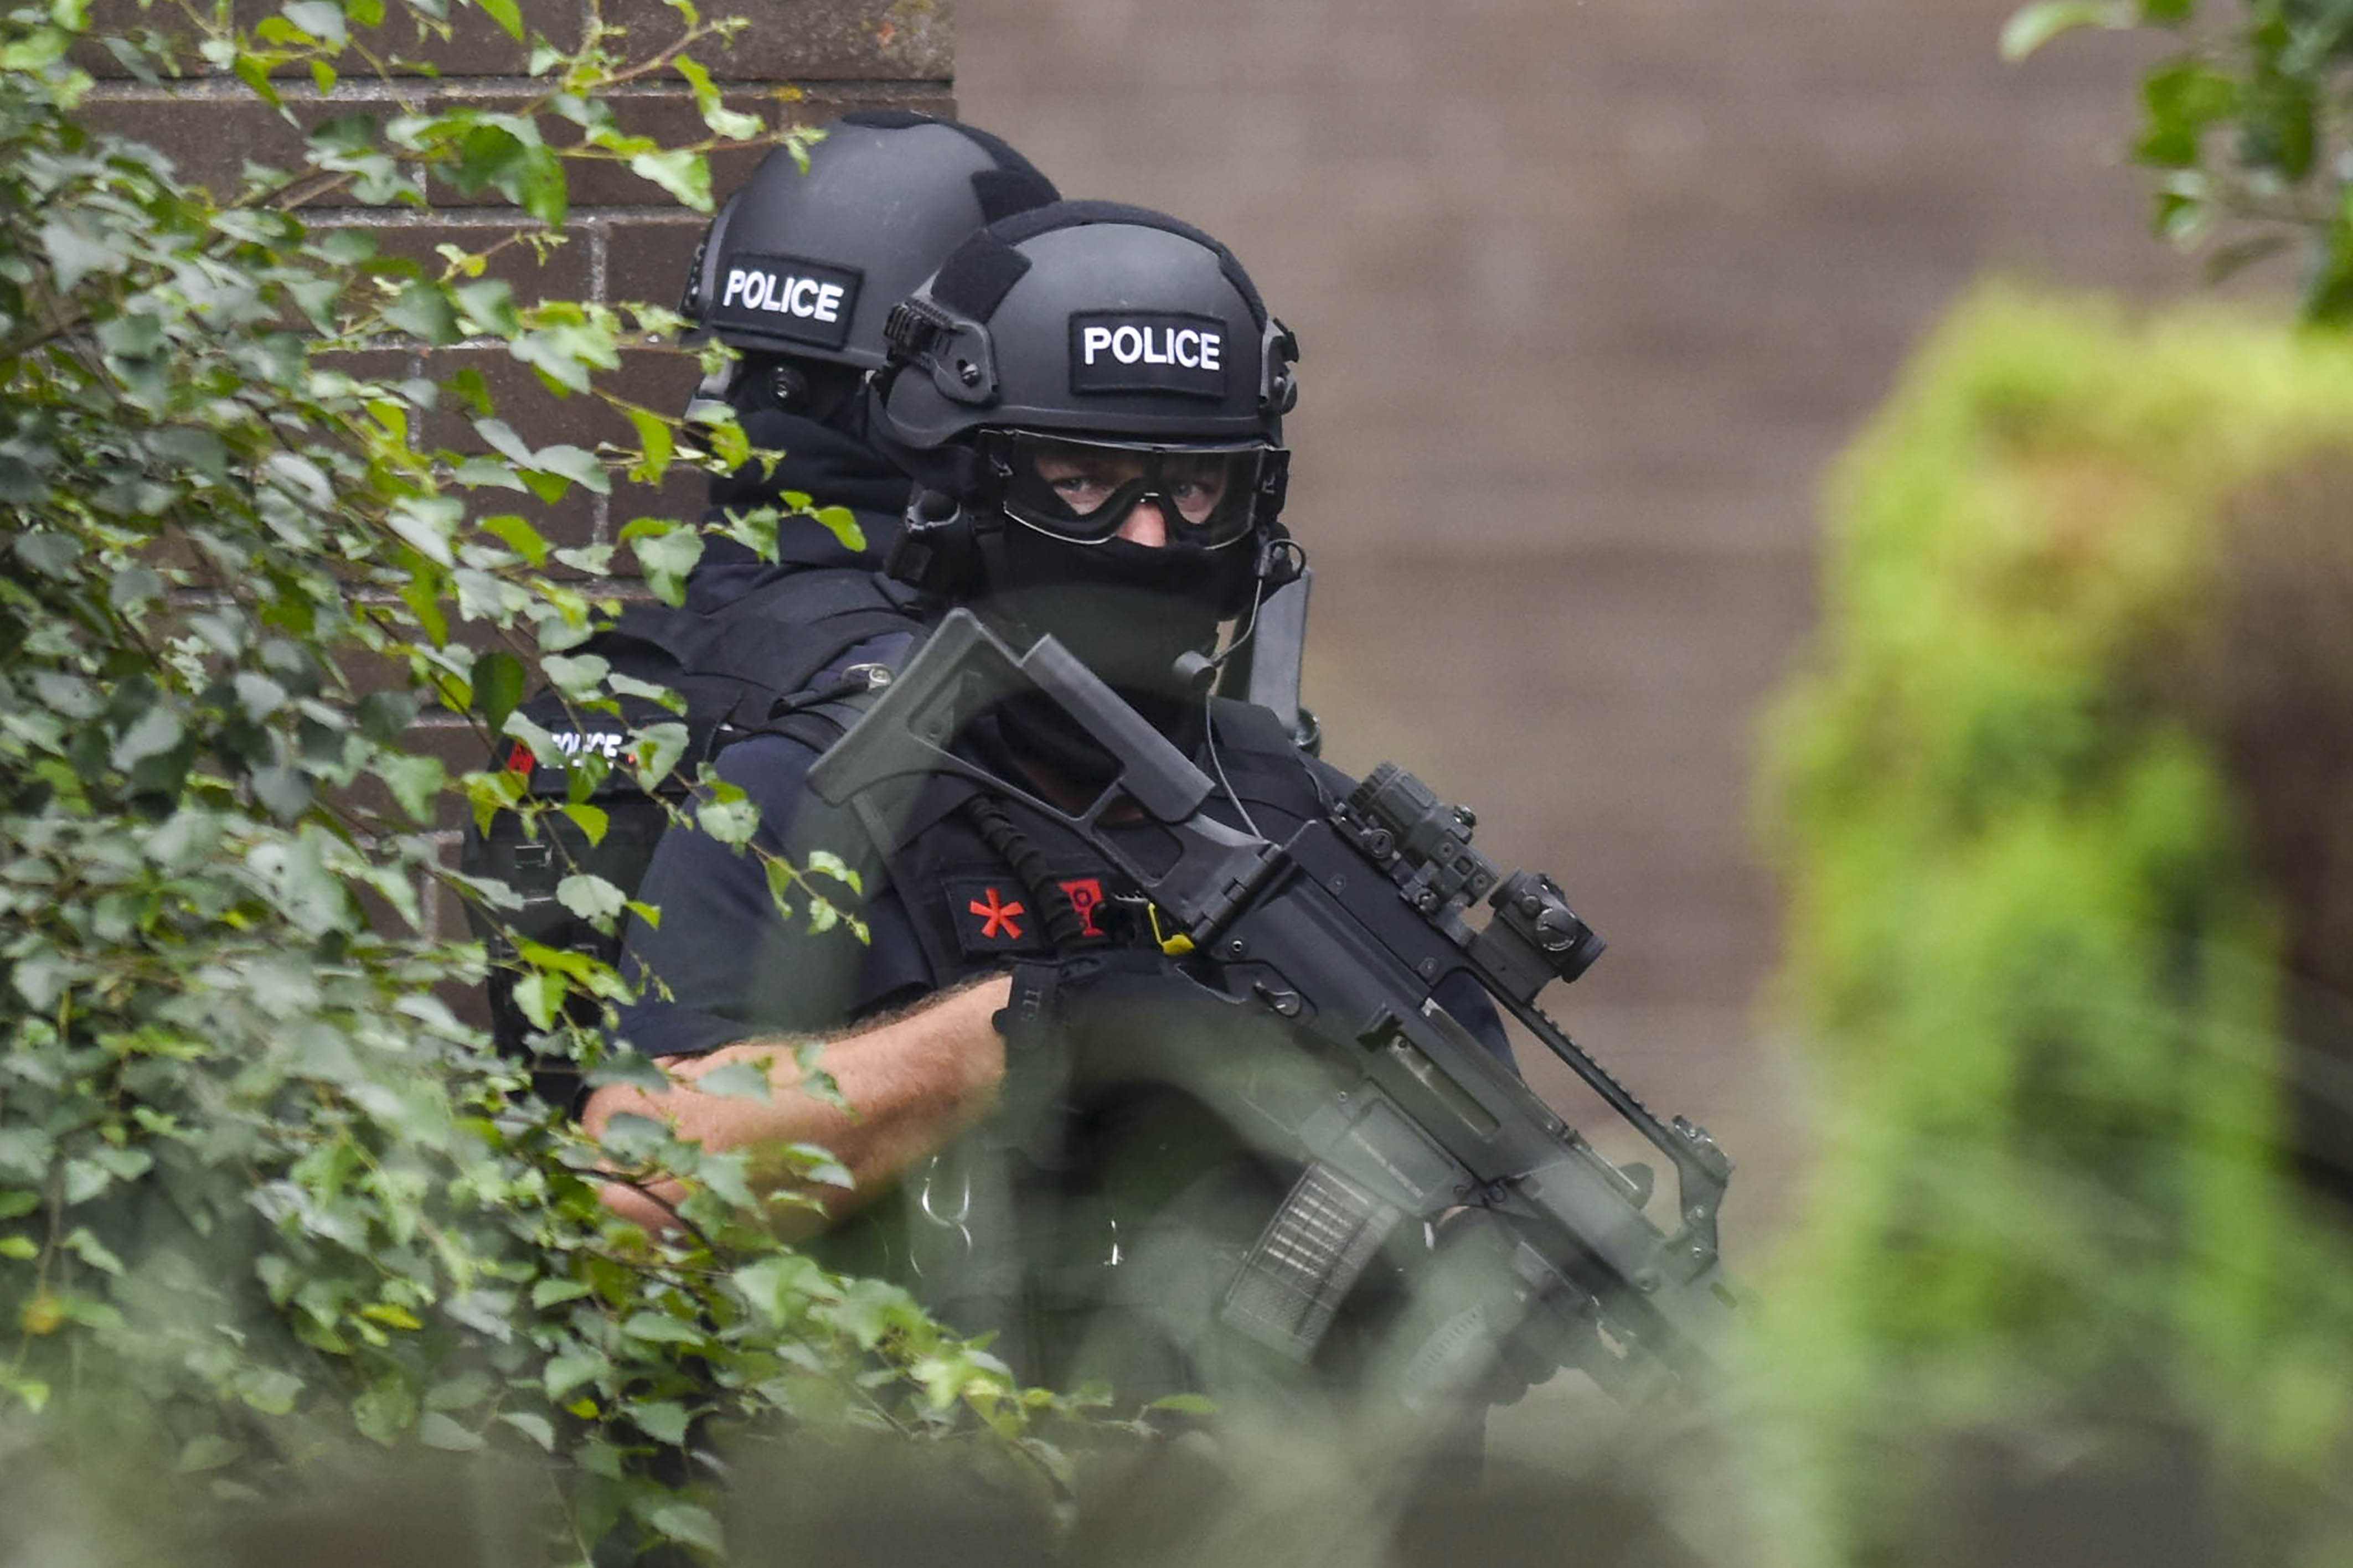 GUNMAN ARRESTED AFTER ARMED POLICE SWOOP ON HOME TO FREE MUM-OF-TWO AND END 25-HOUR HOSTAGE DRAMA